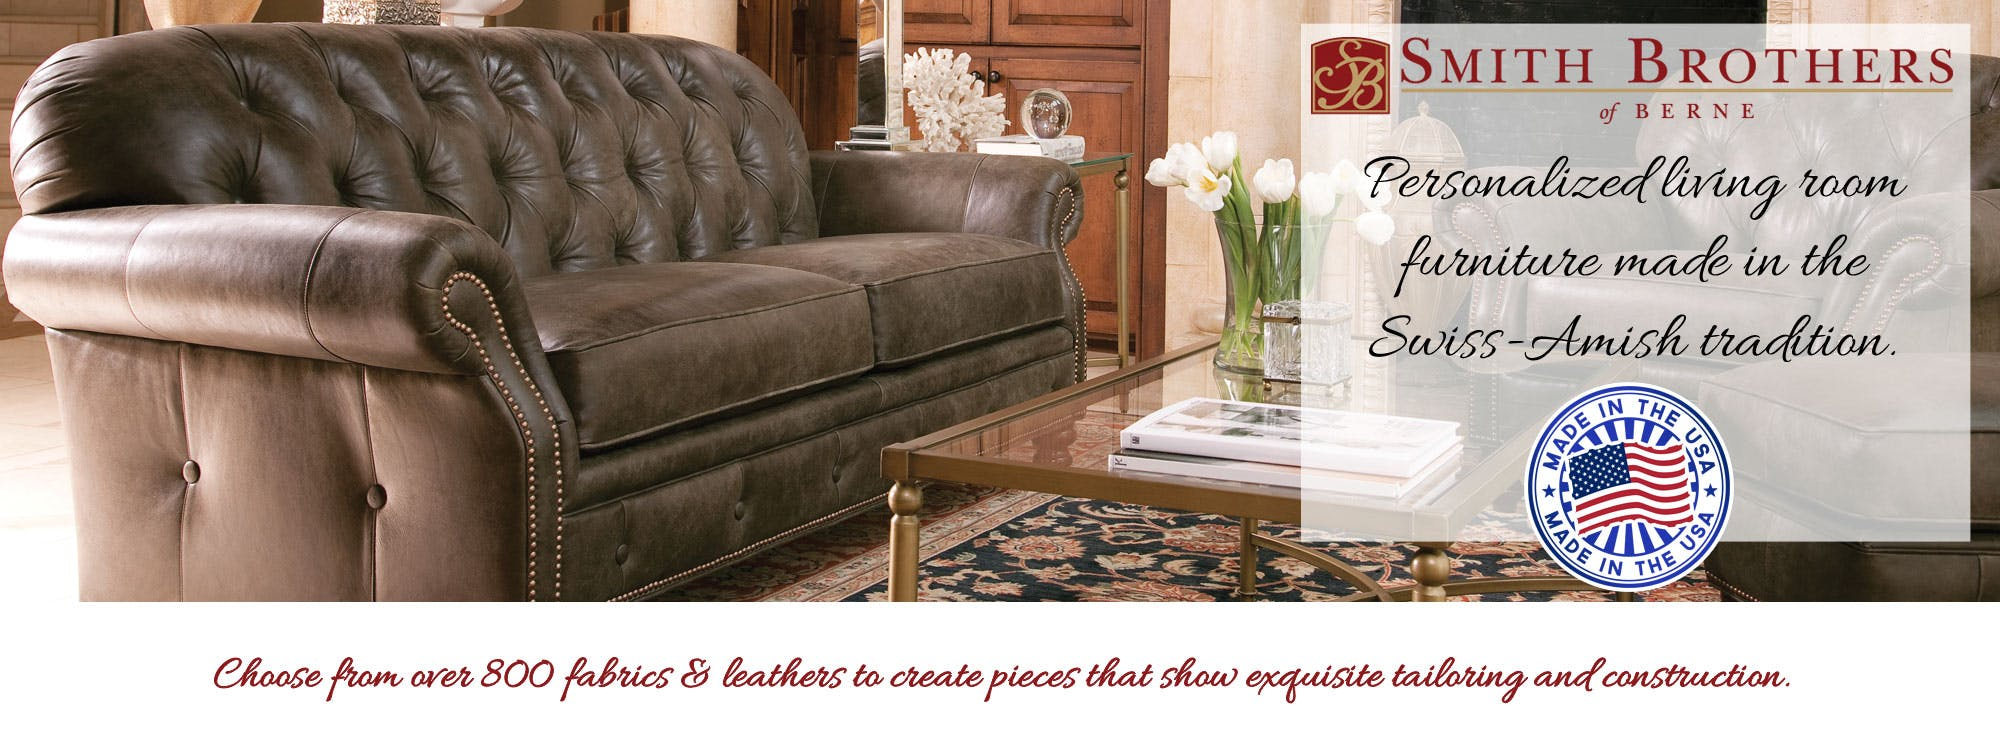 Sofa Dreams Outlet Home Home Furniture Co